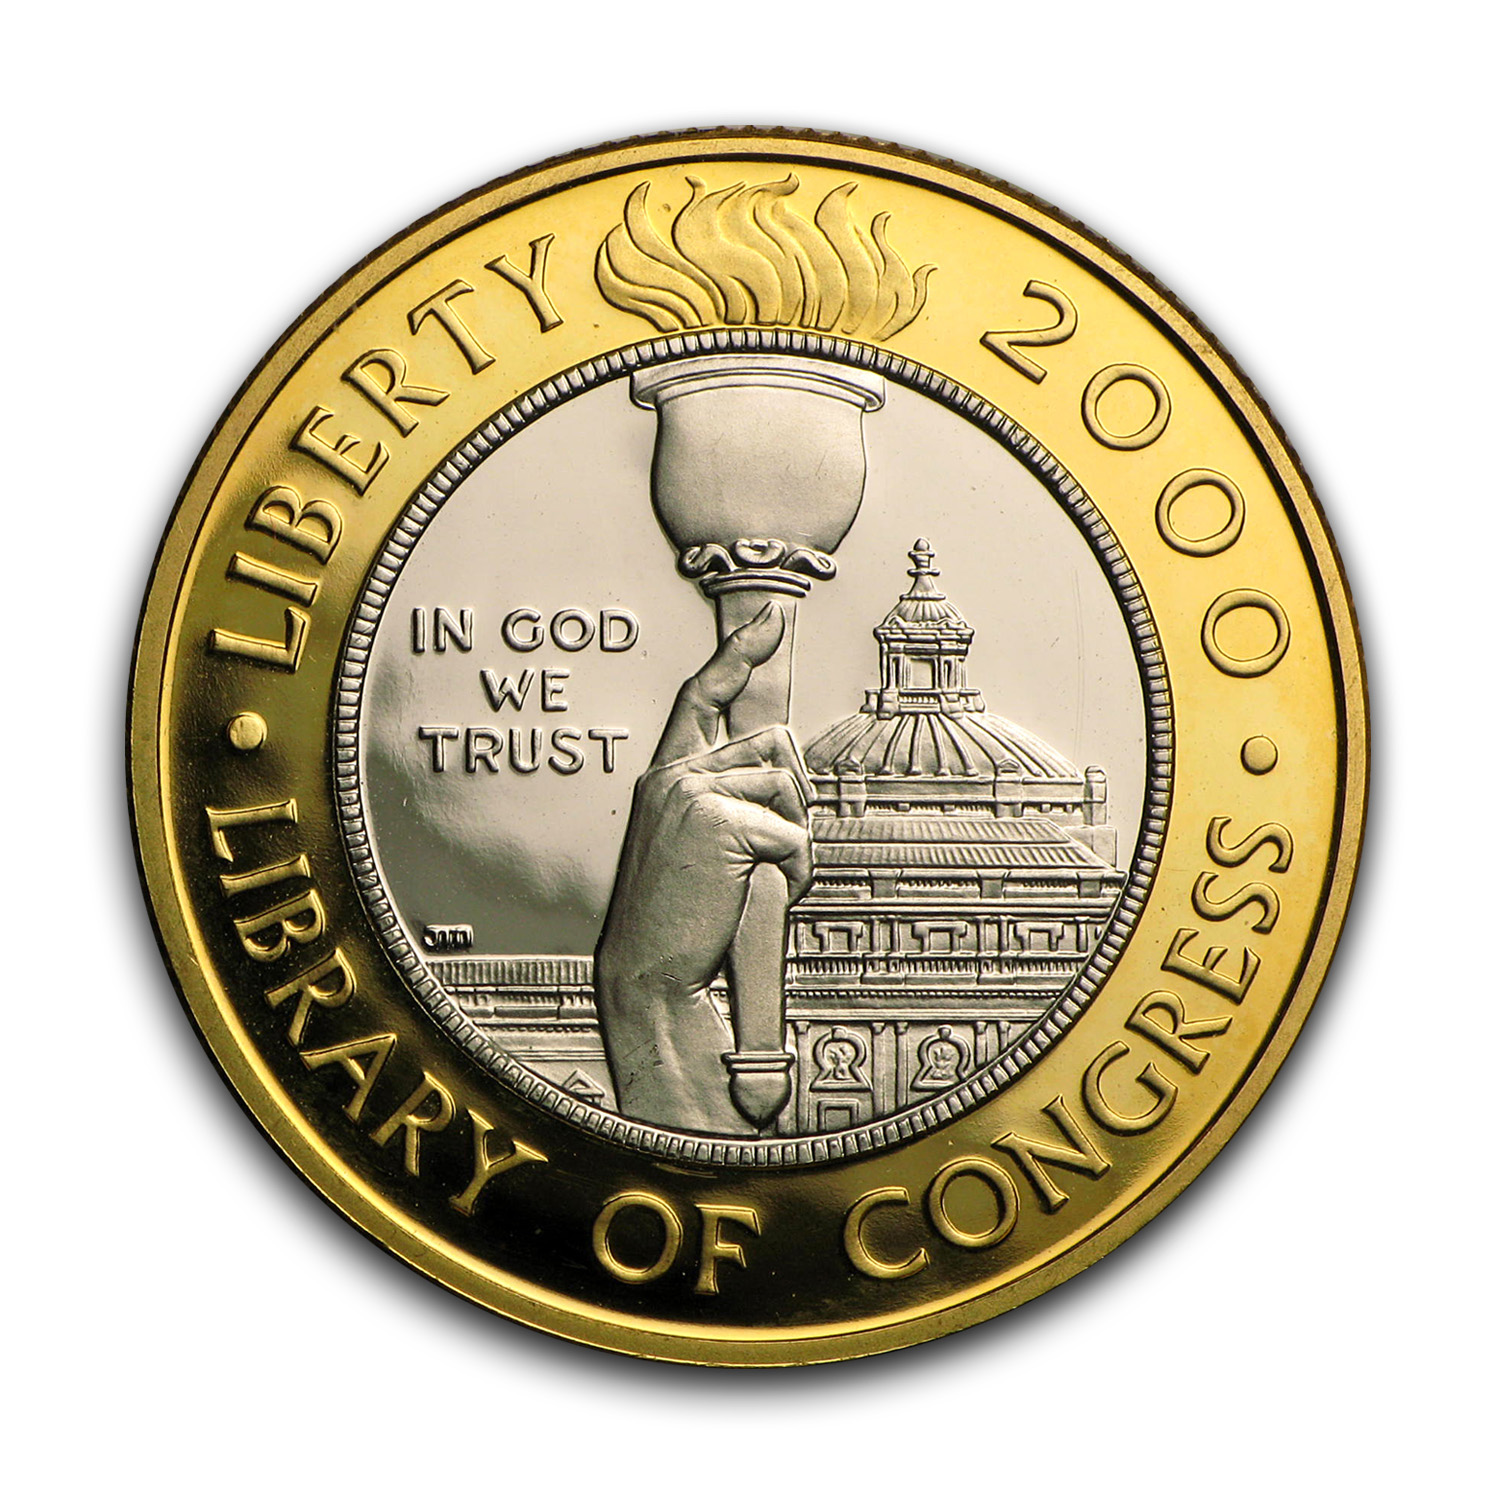 2000-W Gold/Platinum $10 Commem Library of Congress Pf (No Box)